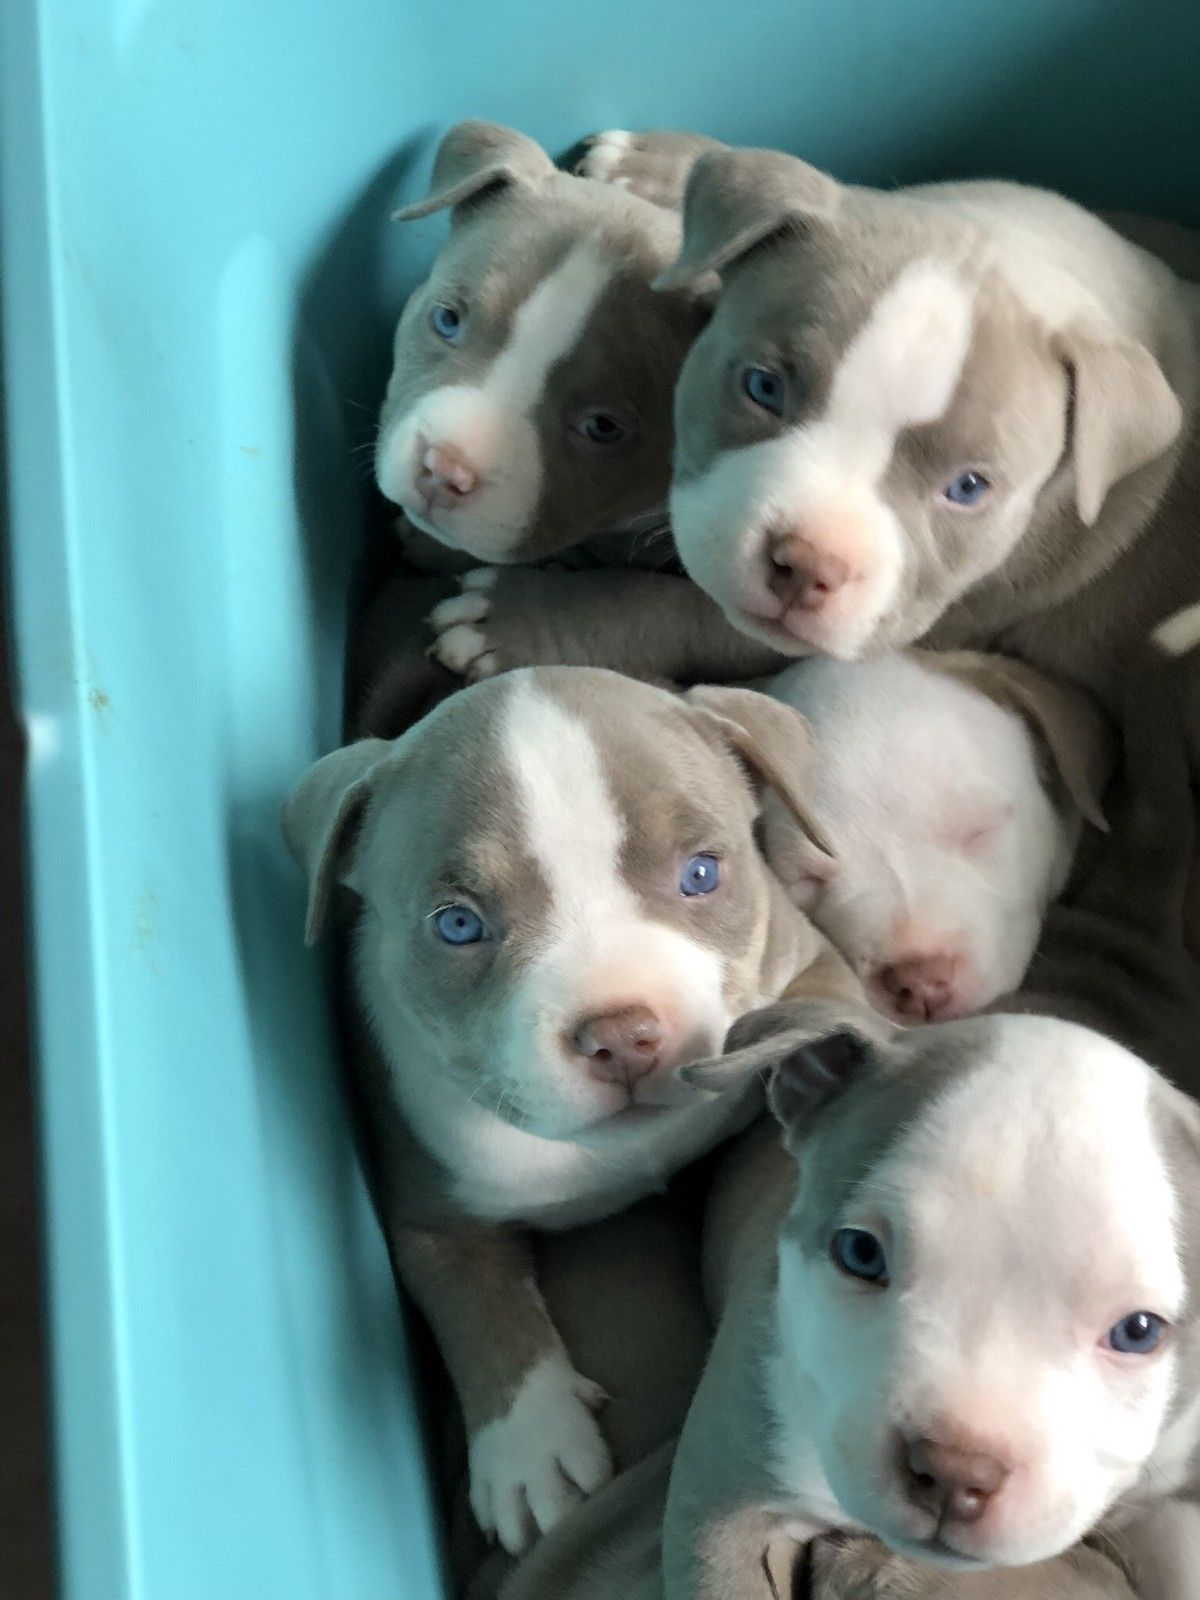 Oh What A Sweetie Purple Tri Love This Color Bully Pitbull Americanbully Bullies Pets Dogs Dax Miagi Pitbul Cute Animals Pitbull Puppies Cute Dogs